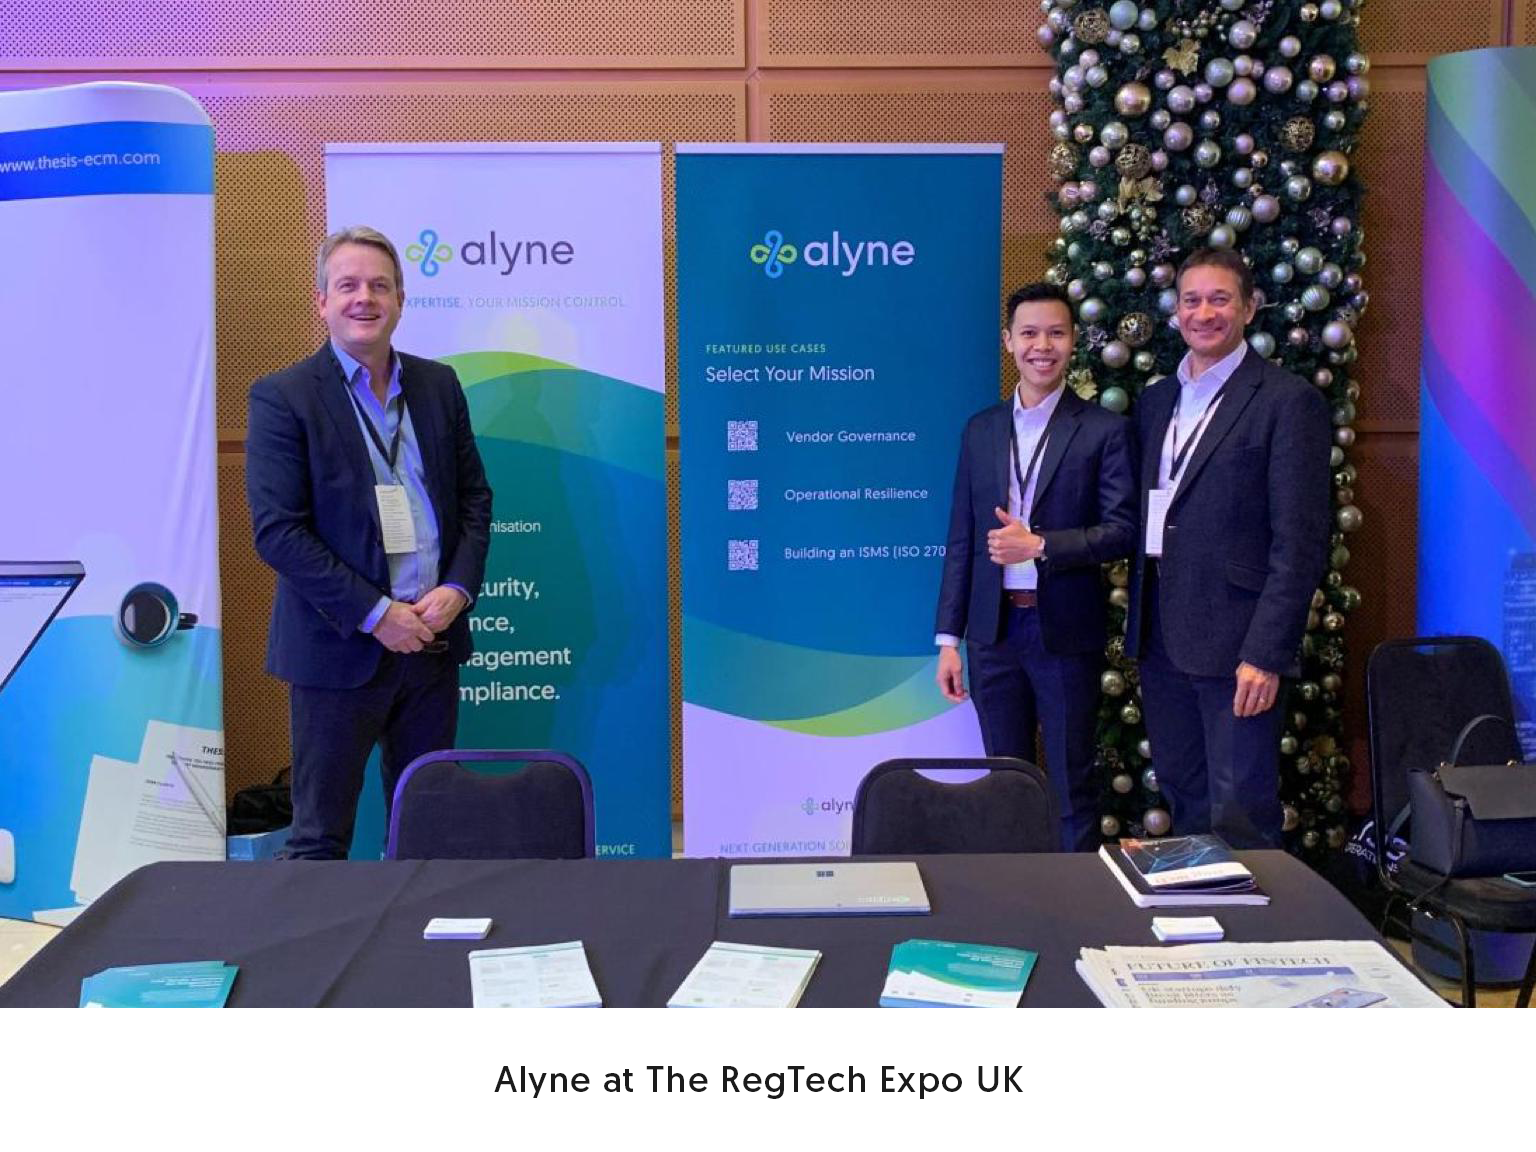 Alyne at The RegTech Expo UK